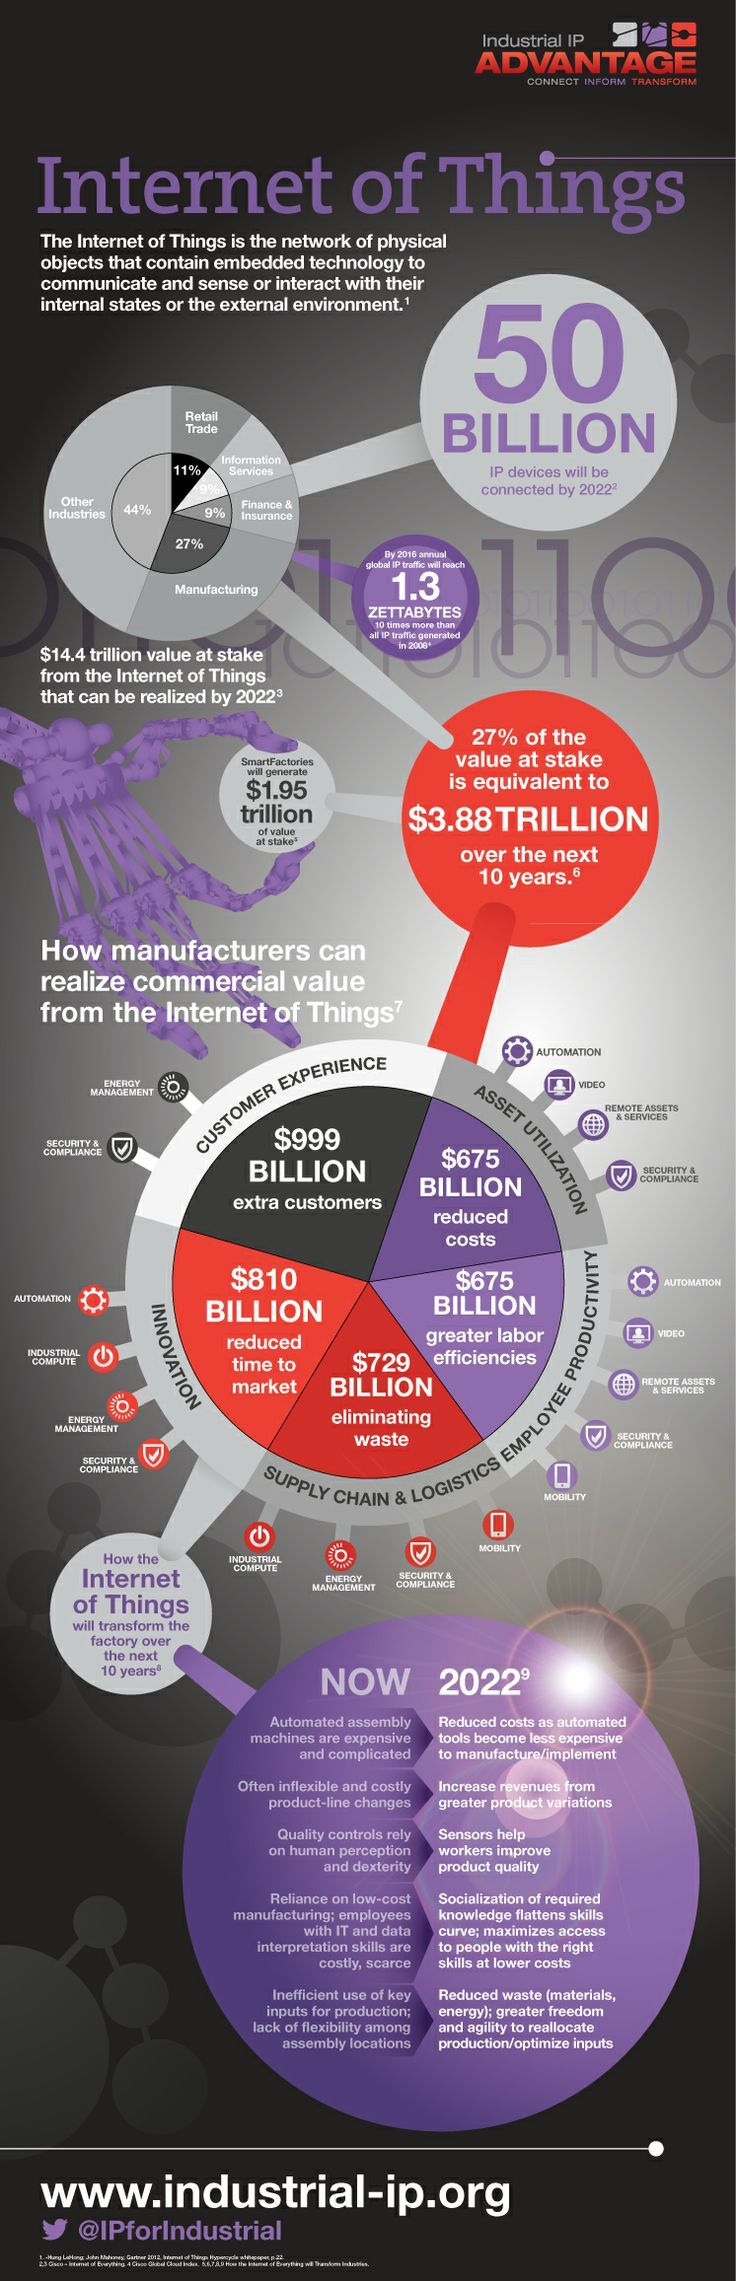 The Internet of Things #Infographic #IoT via industrial-ip.org #internet